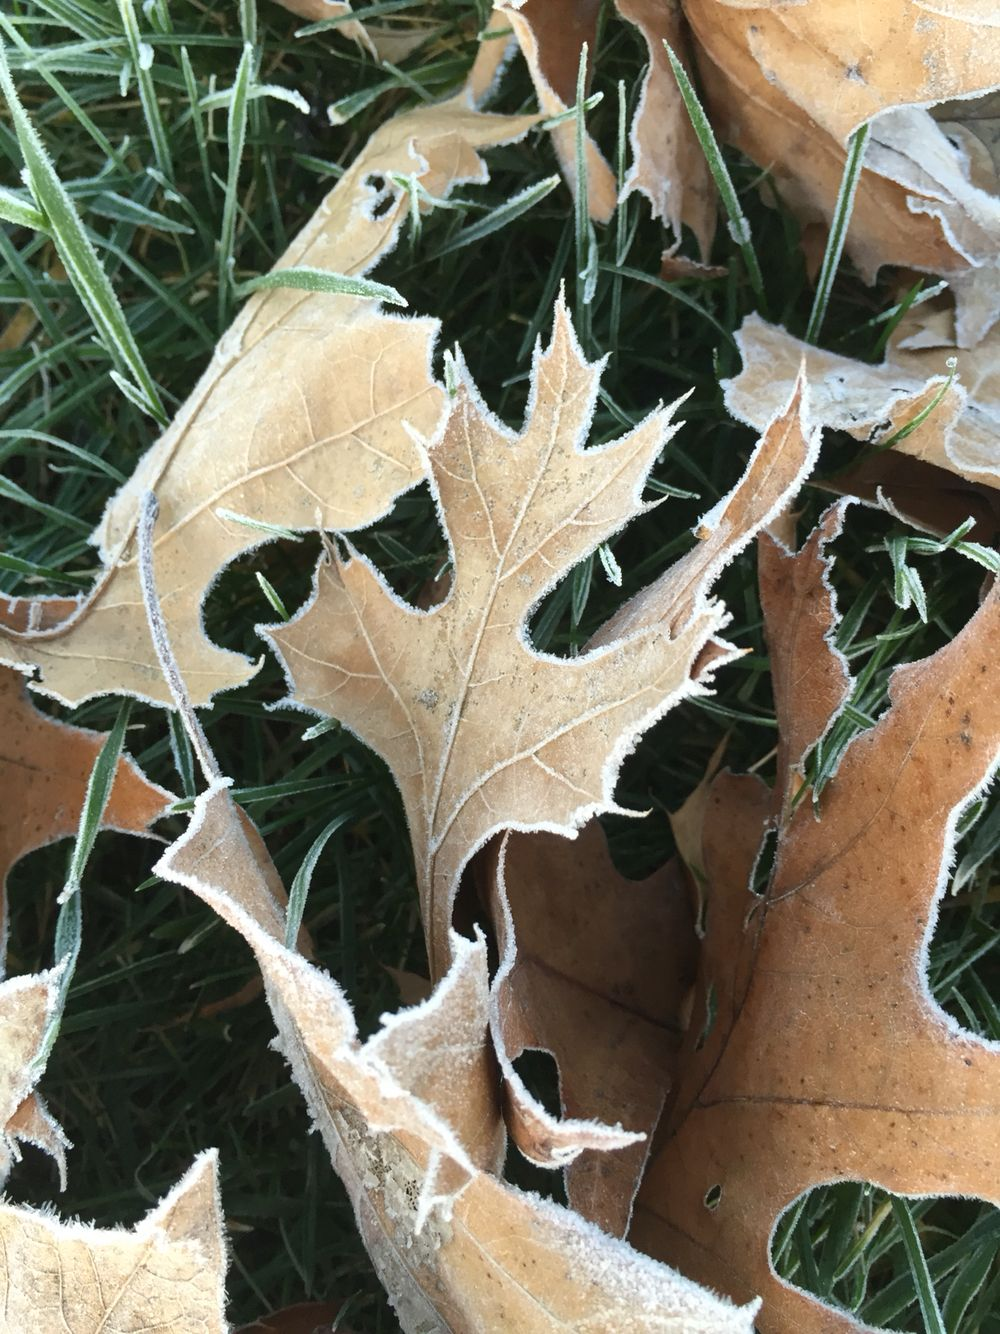 Frost on the leaves. Must be winter.   Version 2.  Rather have summer weather.